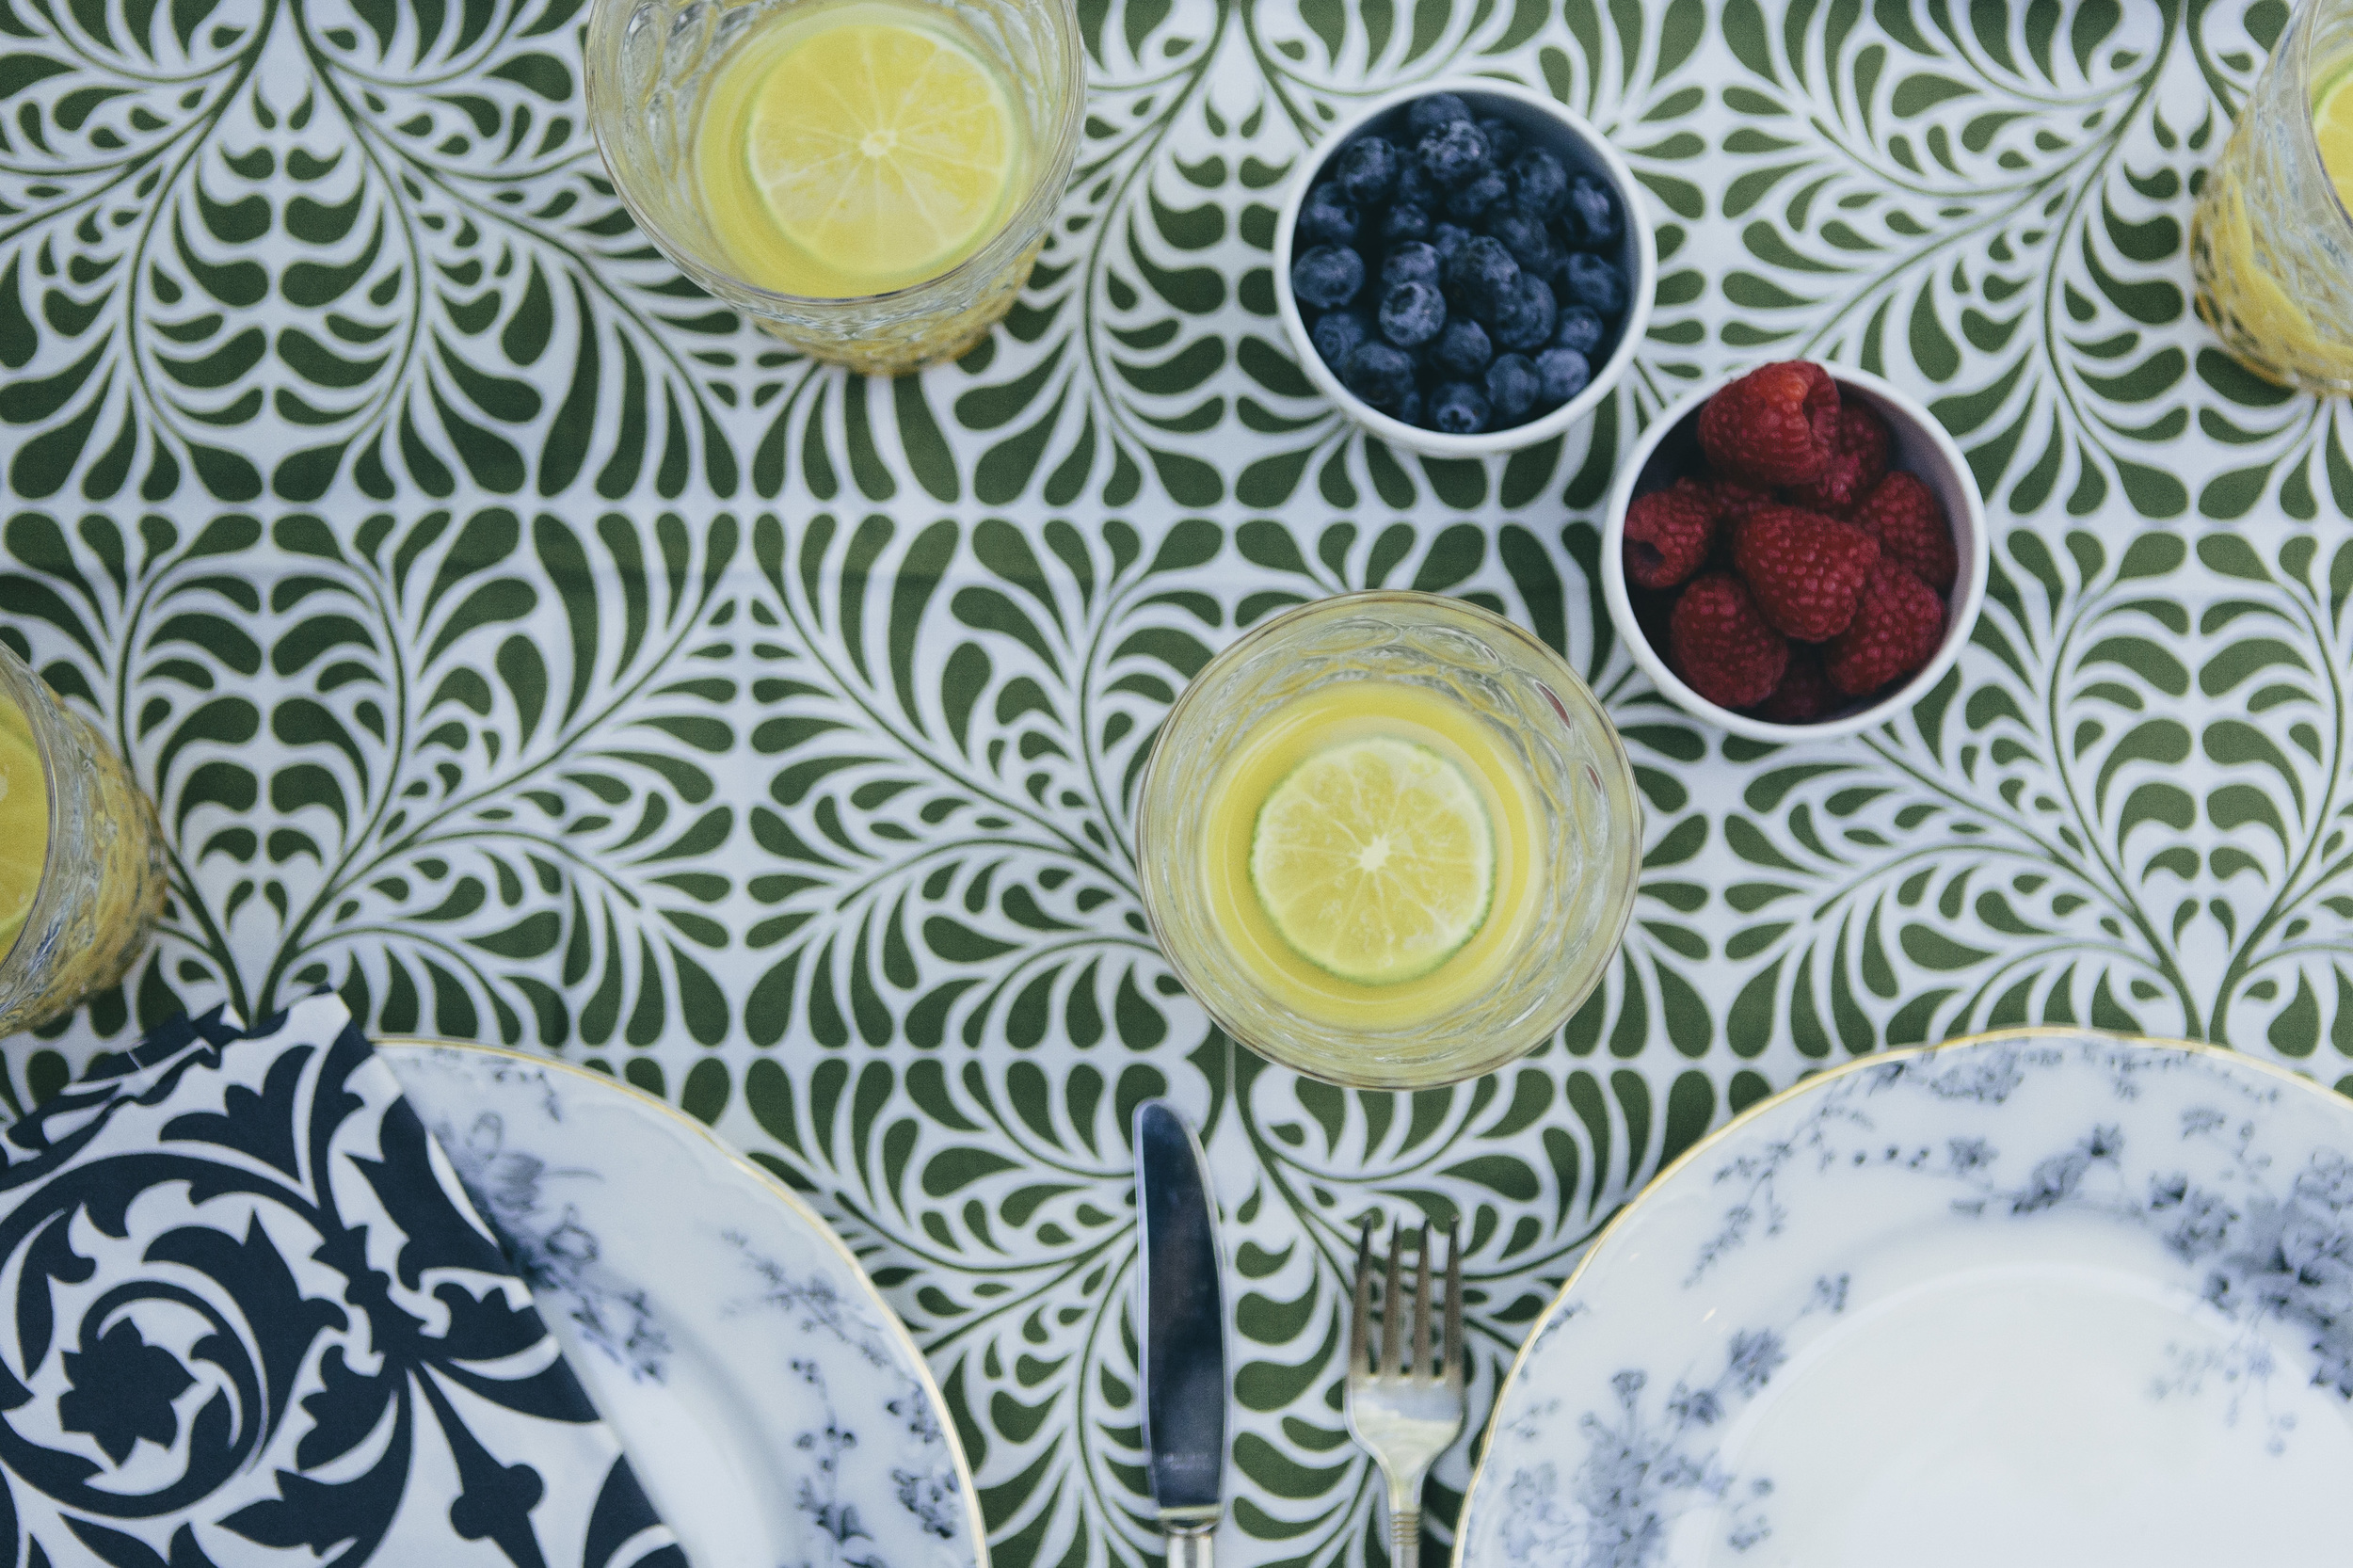 green and white cotton tablecloth for the breakfast table